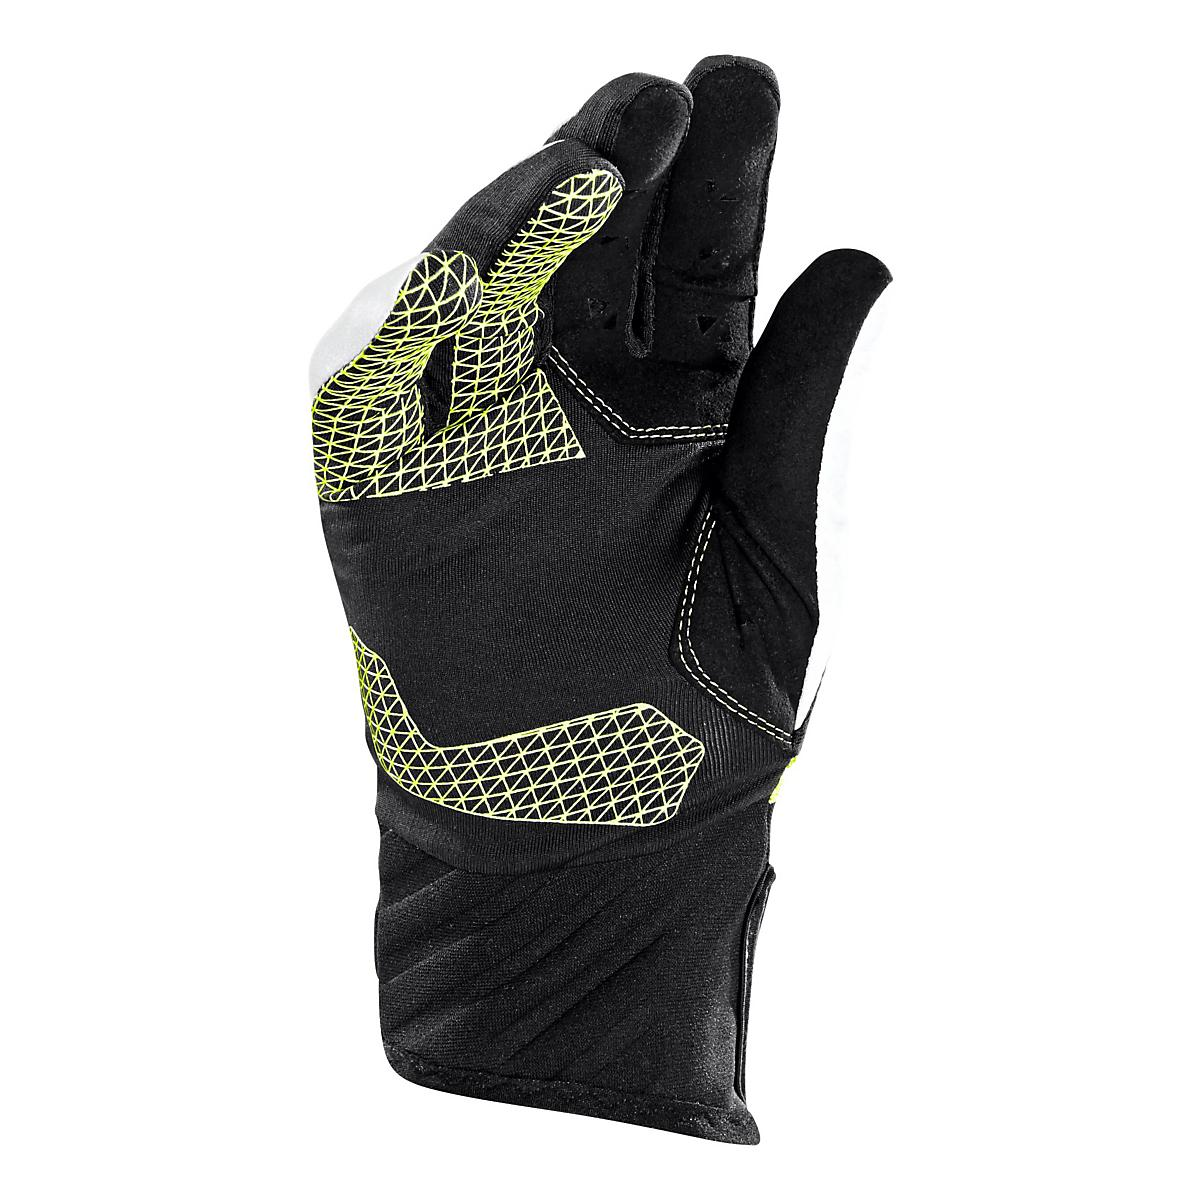 Under Armour�ColdGear Infrared Charge Reflective Gove